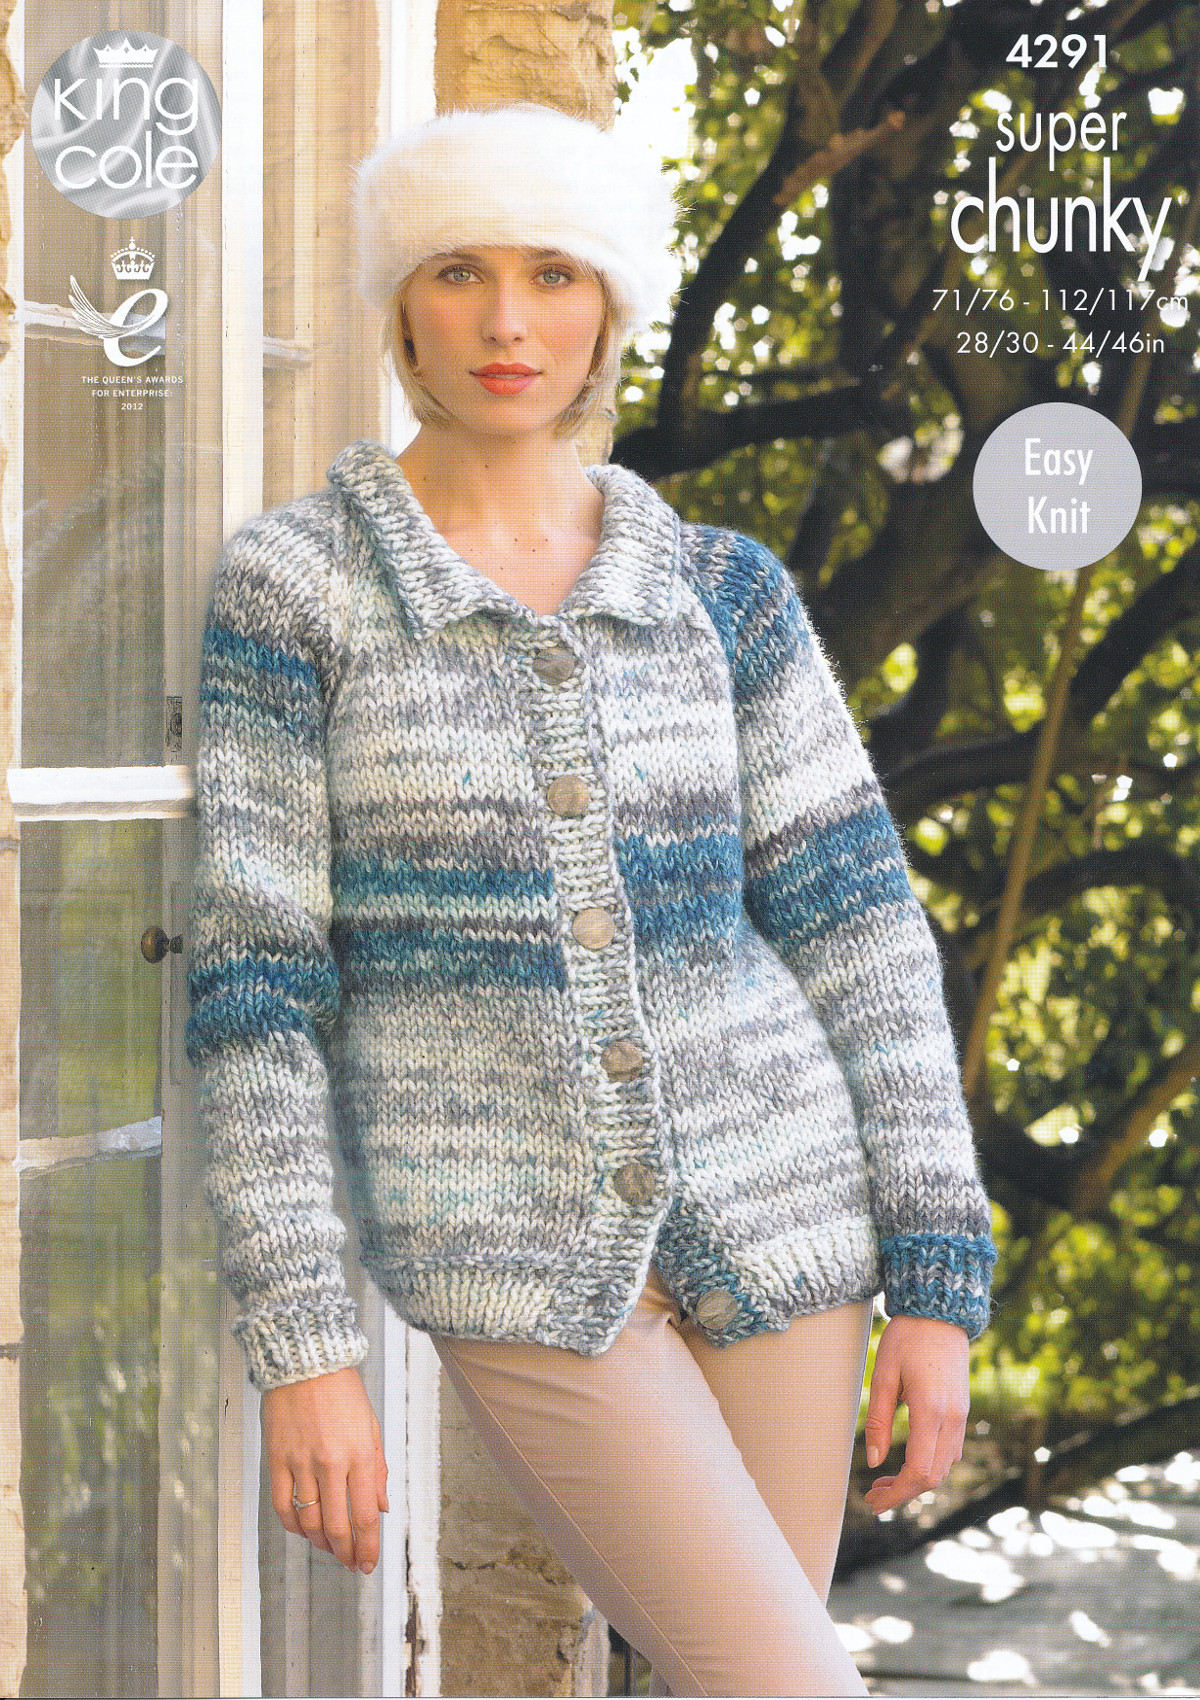 Super Chunky Jumper Knitting Pattern : Ladies Super Chunky Knitting Pattern King Cole Polo Neck Jumper Cardigan 4291...